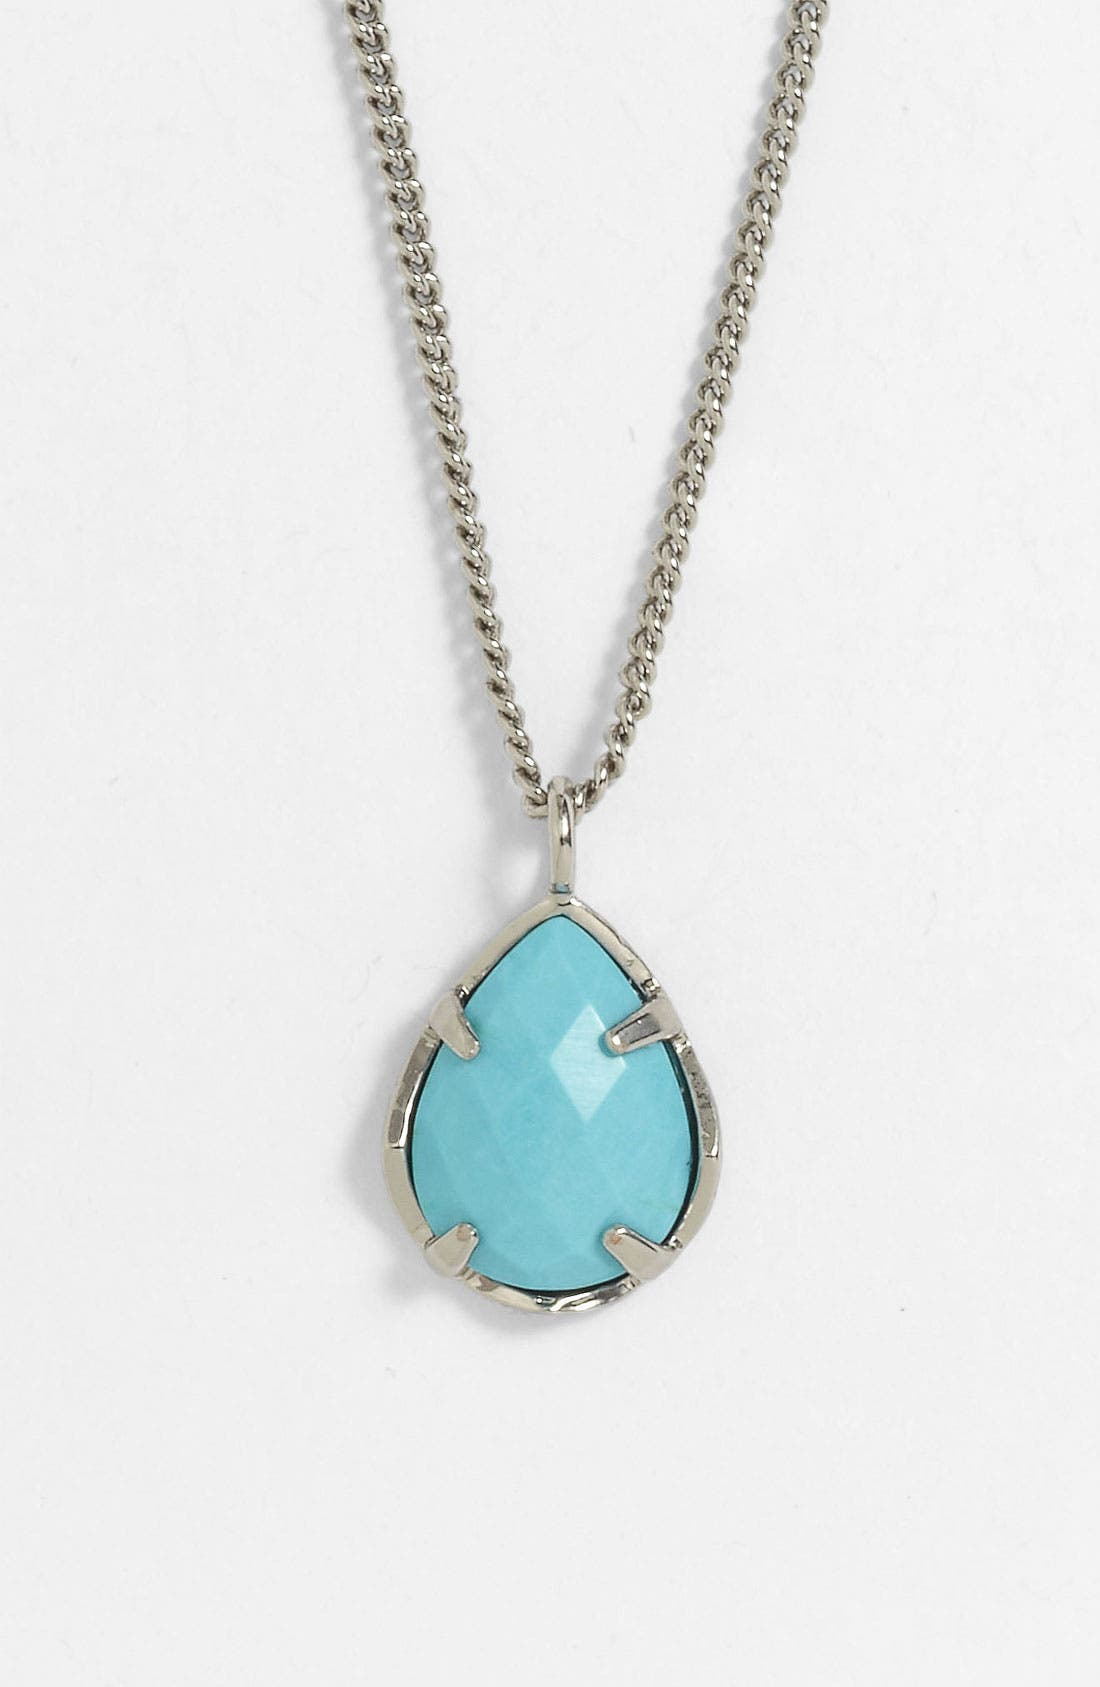 Main Image - Kendra Scott 'Nima' Reversible Pendant Necklace